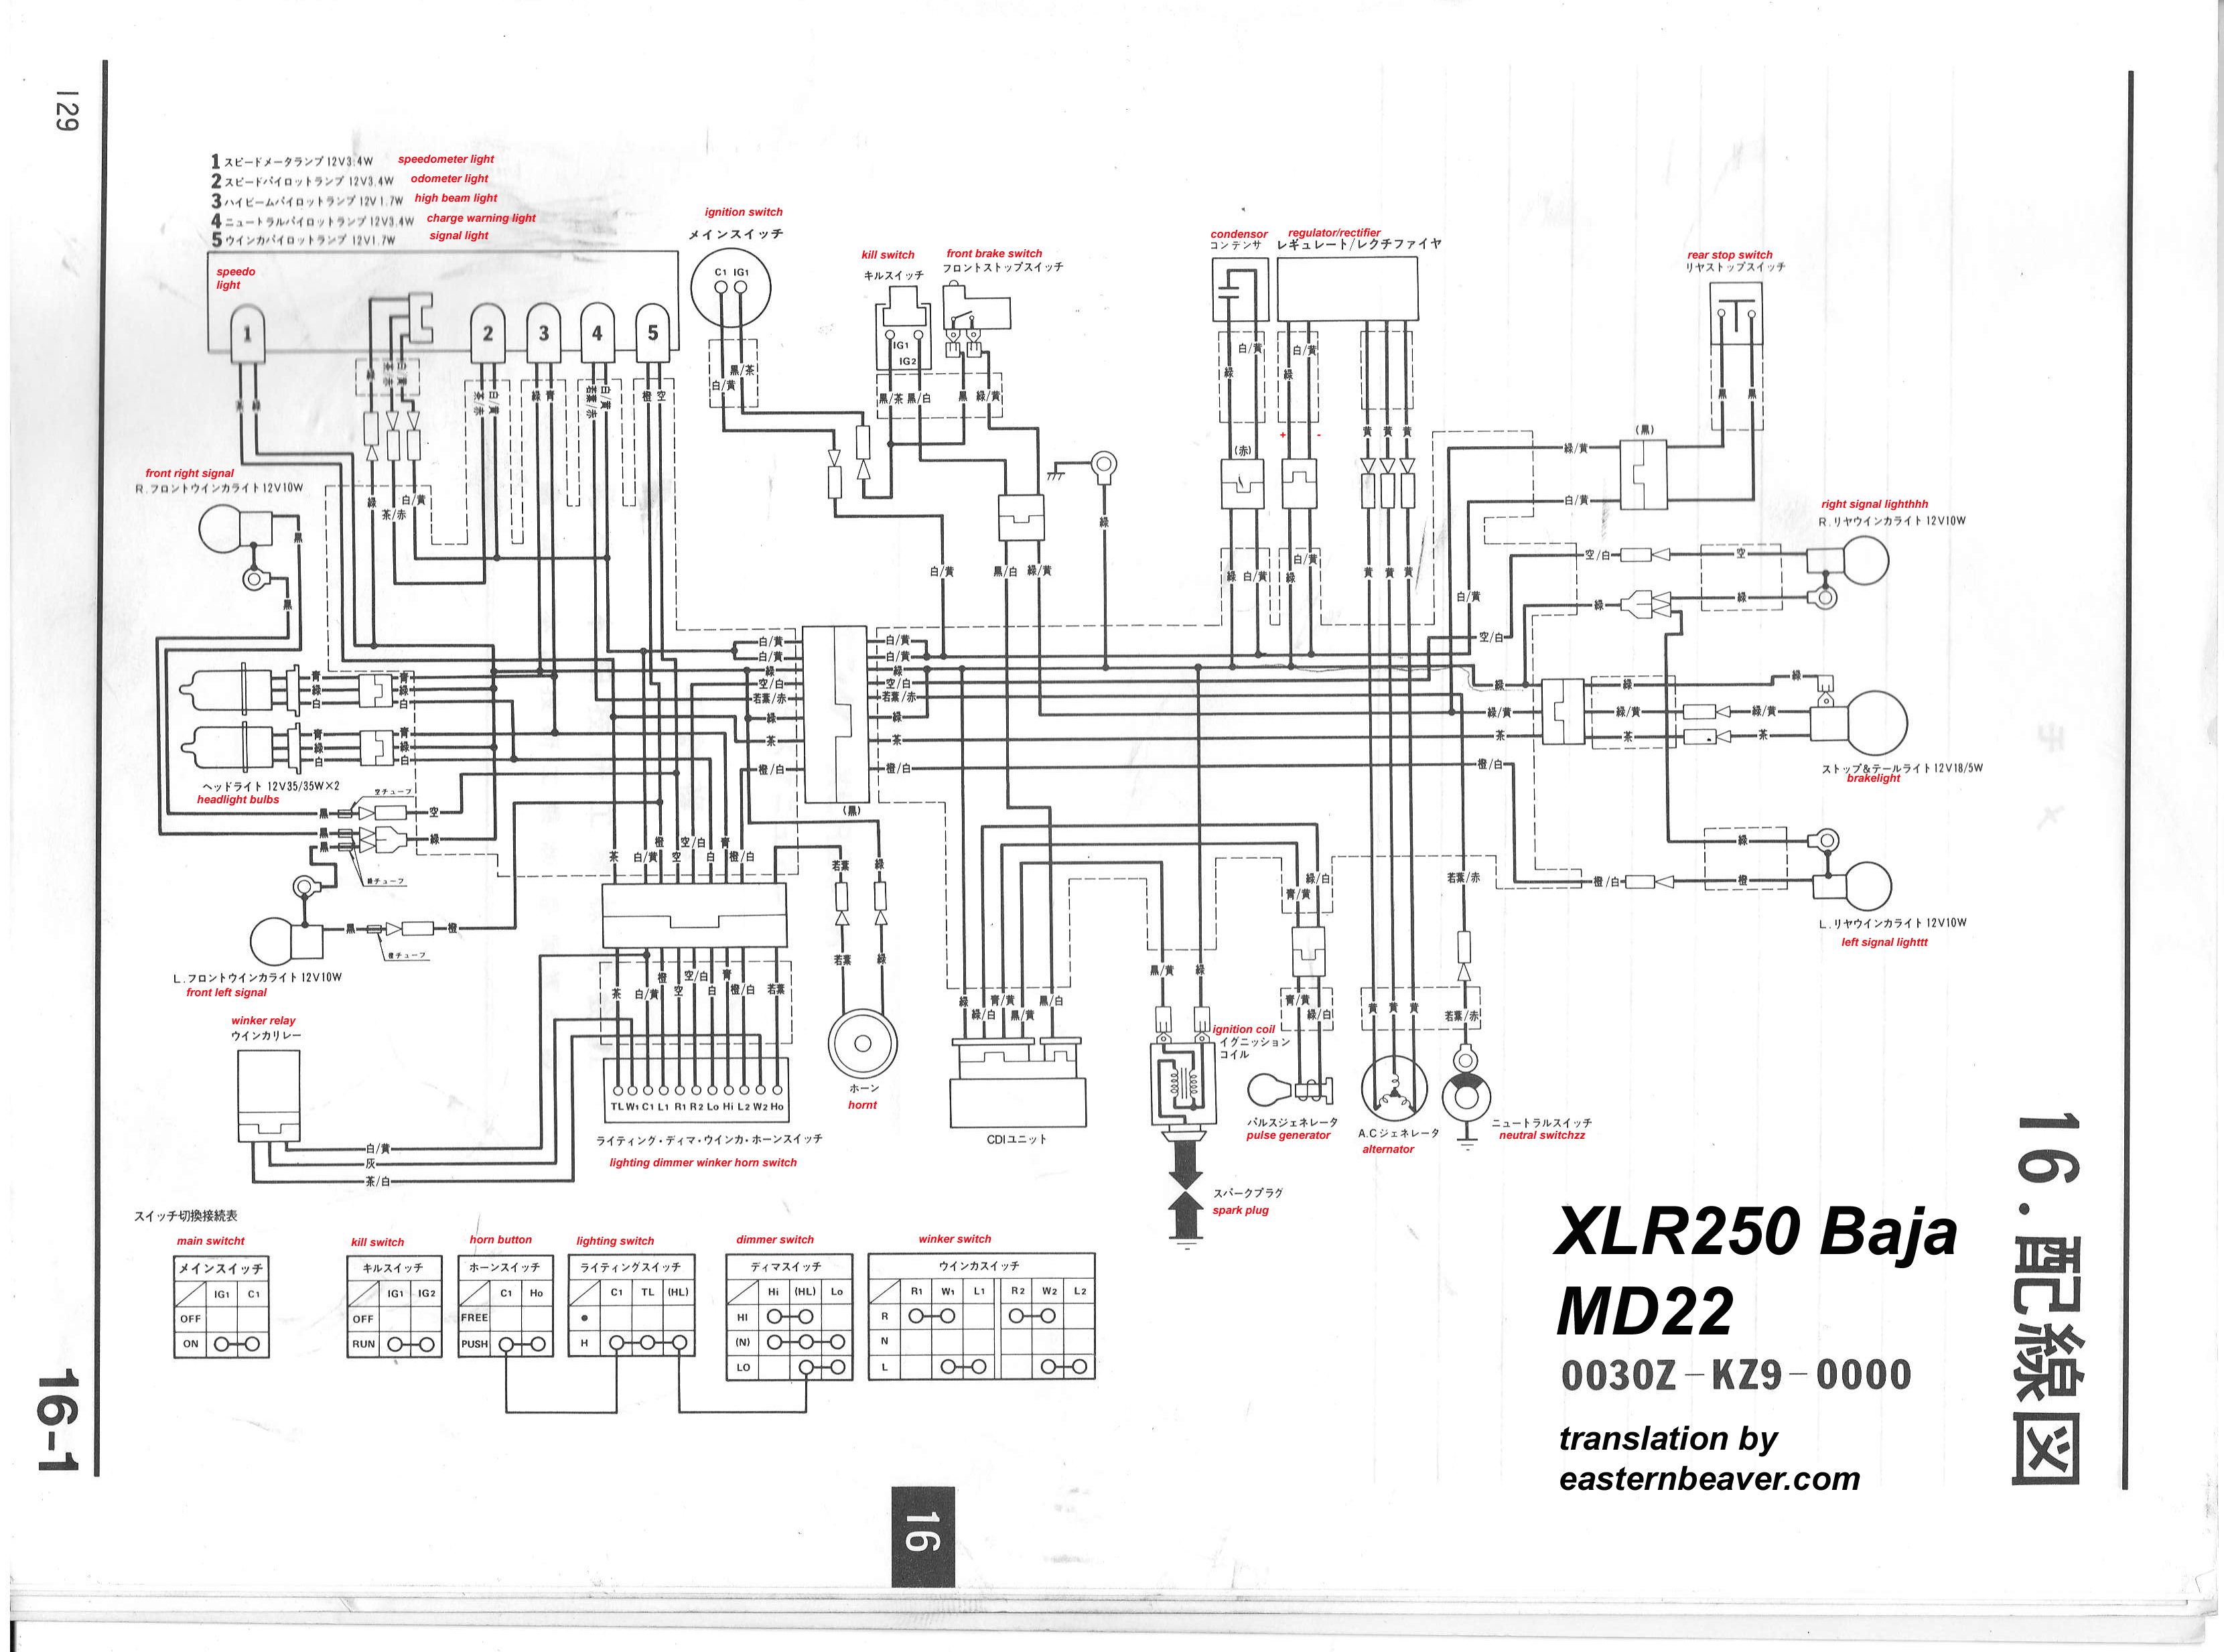 XLR250_Baja Wiring Diagram MD22 xlr jack wiring diagram the wiring diagram readingrat net australian xr650r wiring diagram at crackthecode.co